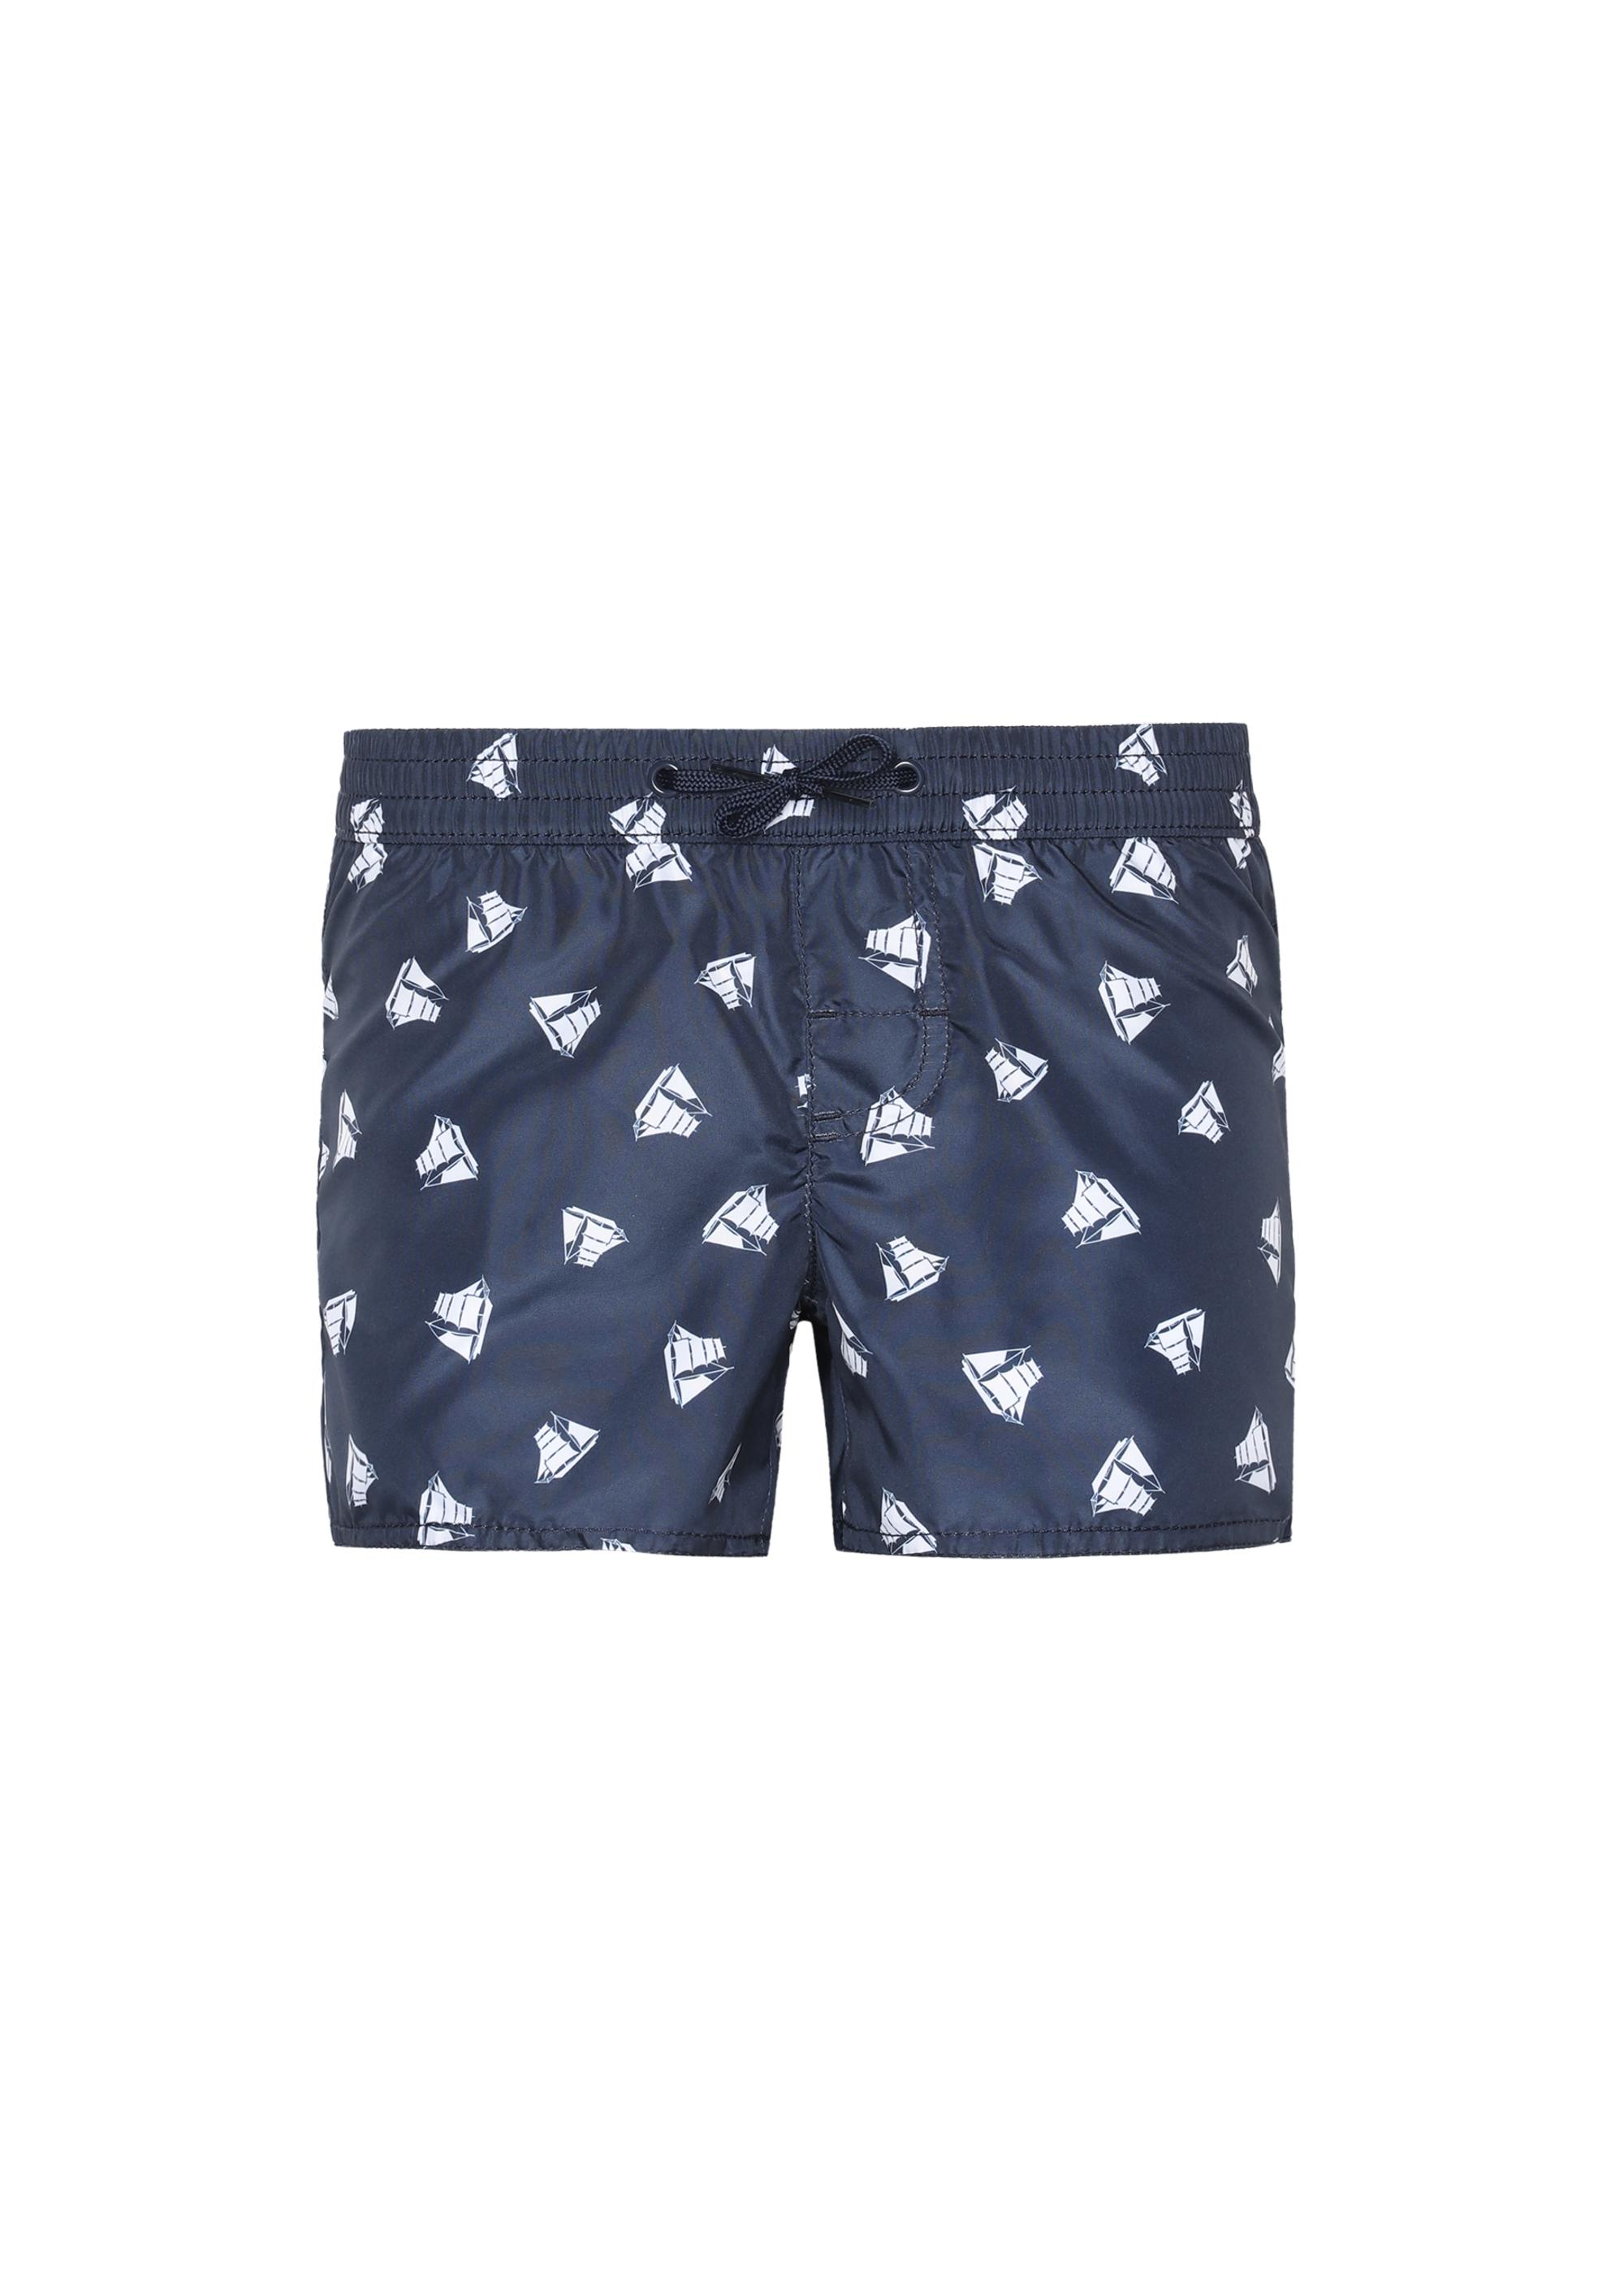 31ab6b77b5 Boys' Formentera patterned swim trunks - Calzedonia